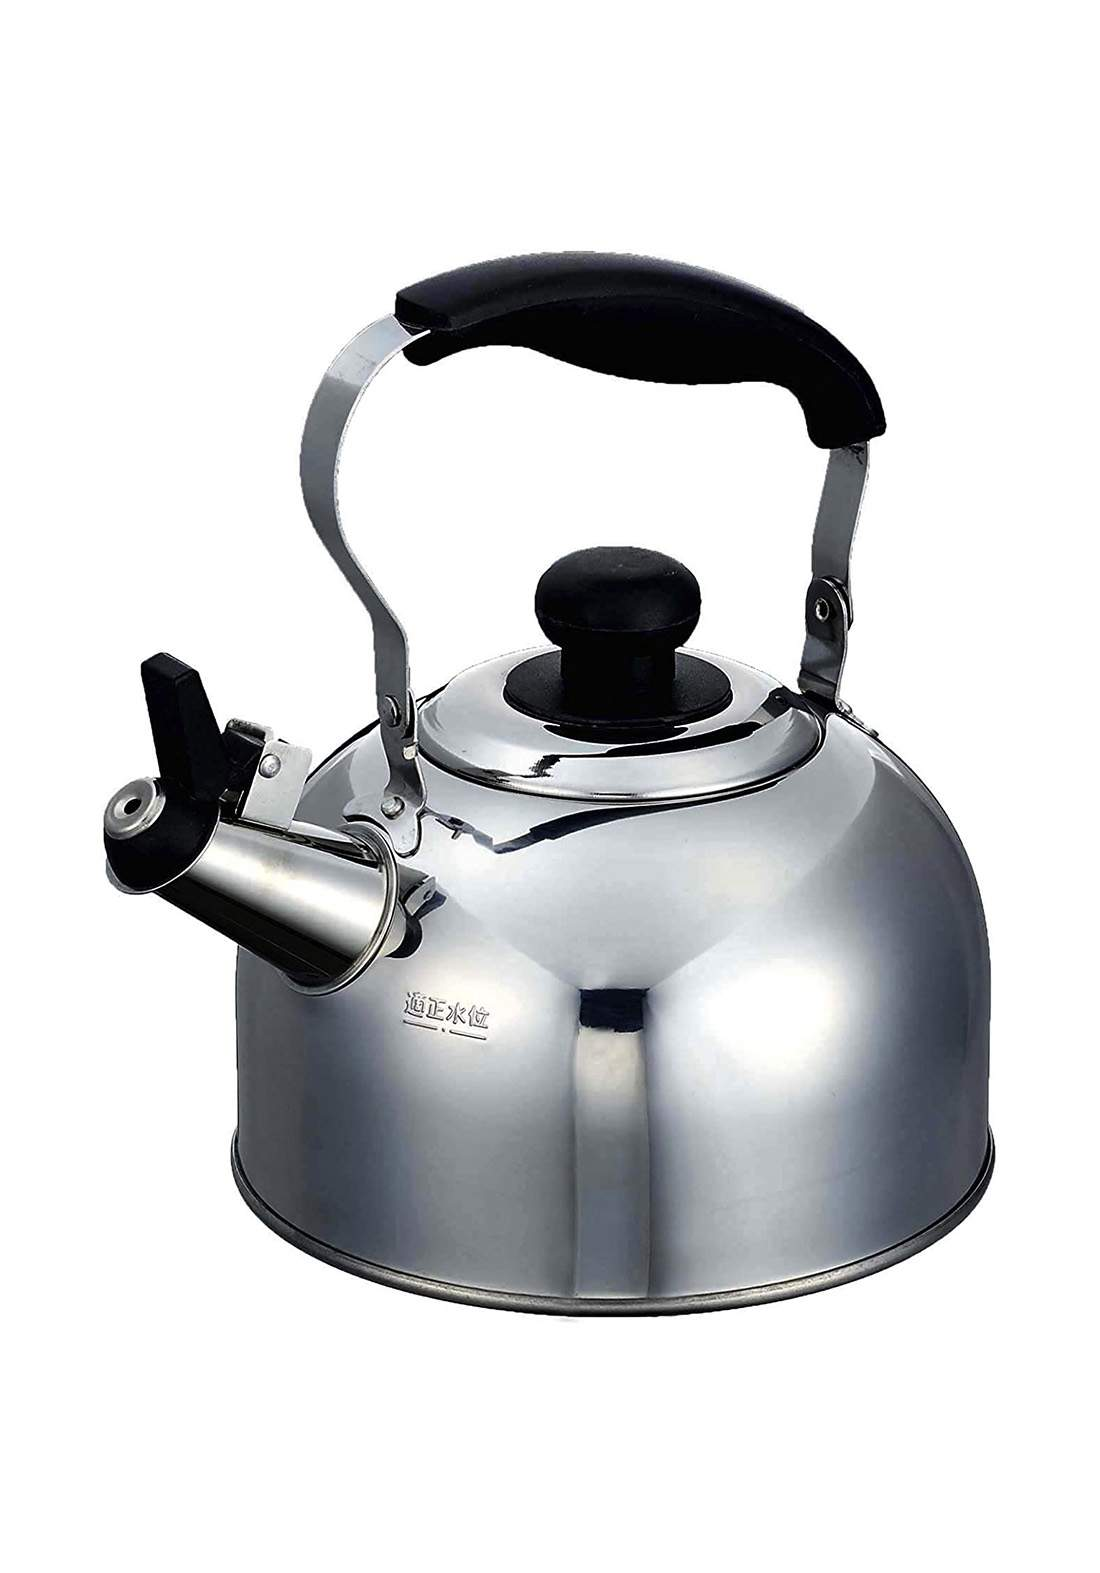 Pearl Metal HB-7349 Wakato Trading Kettle  2.4 L ابريق شاي